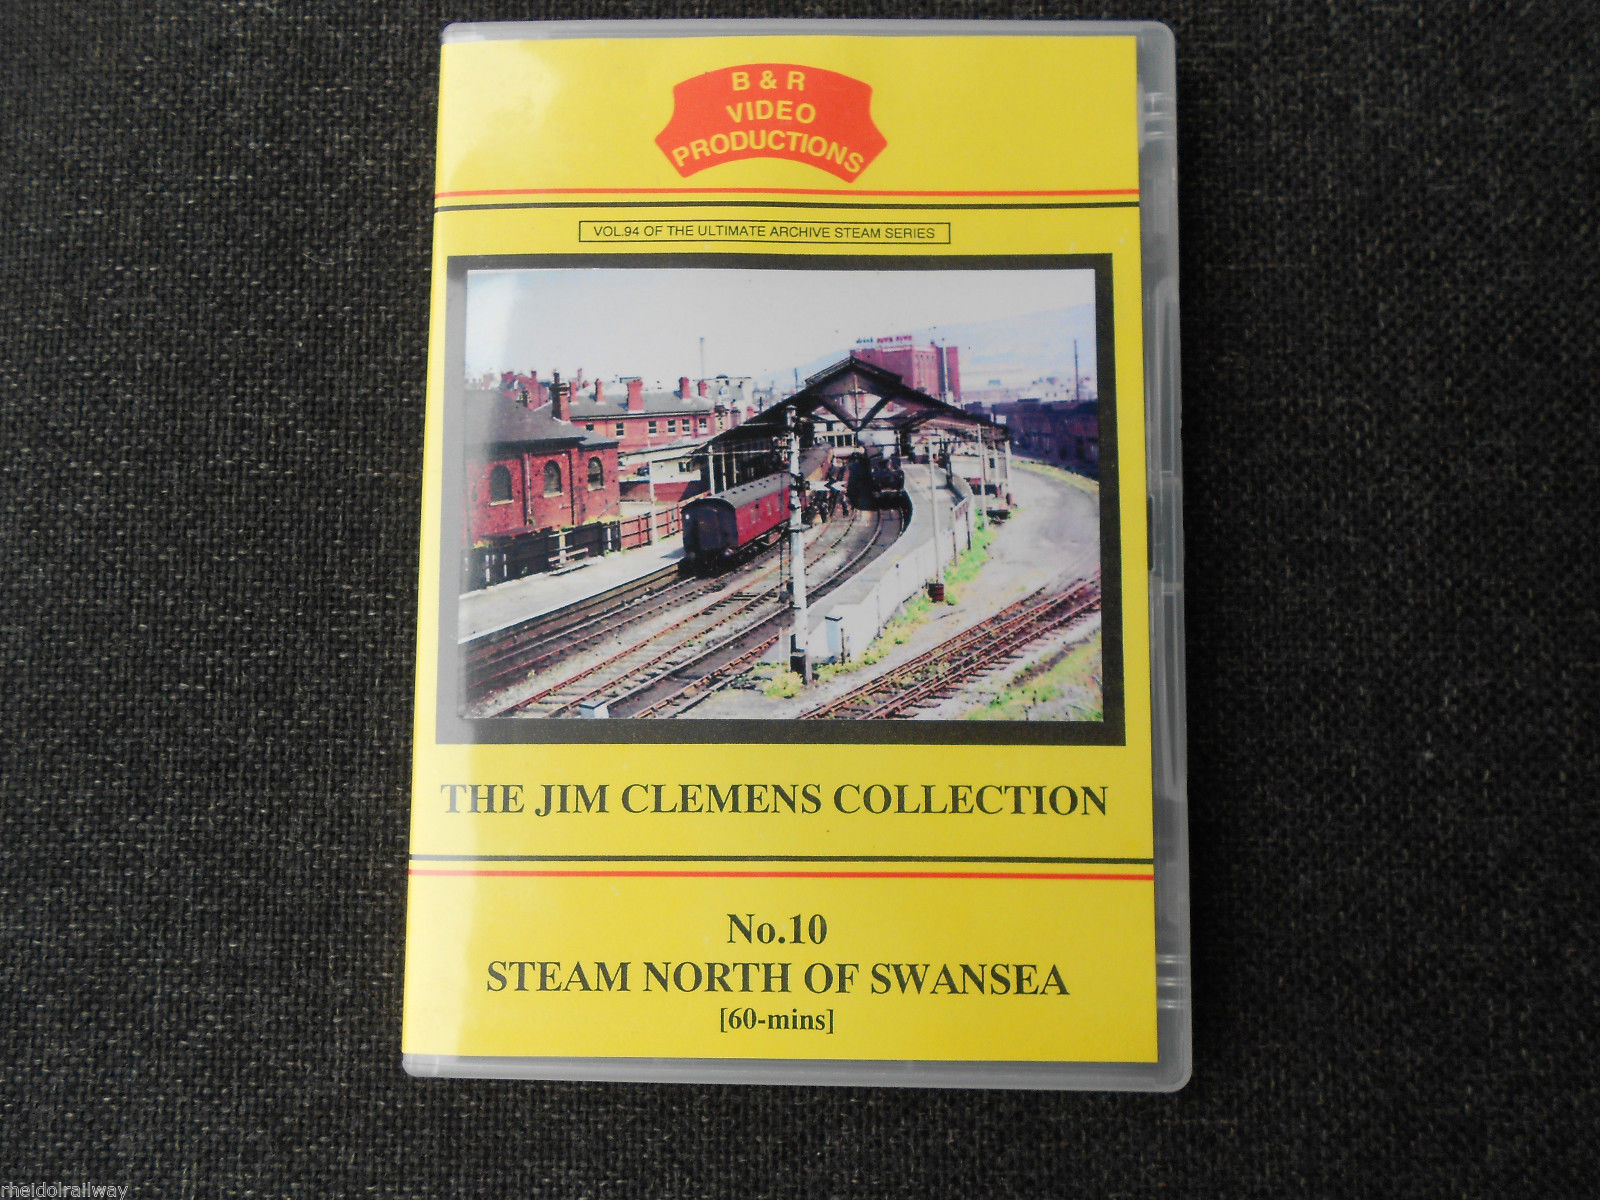 Carmarthen, Aberayron, Aberystwyth, Steam North Of Swansea B&R Vol 94 DVD - The Vale of Rheidol Railway